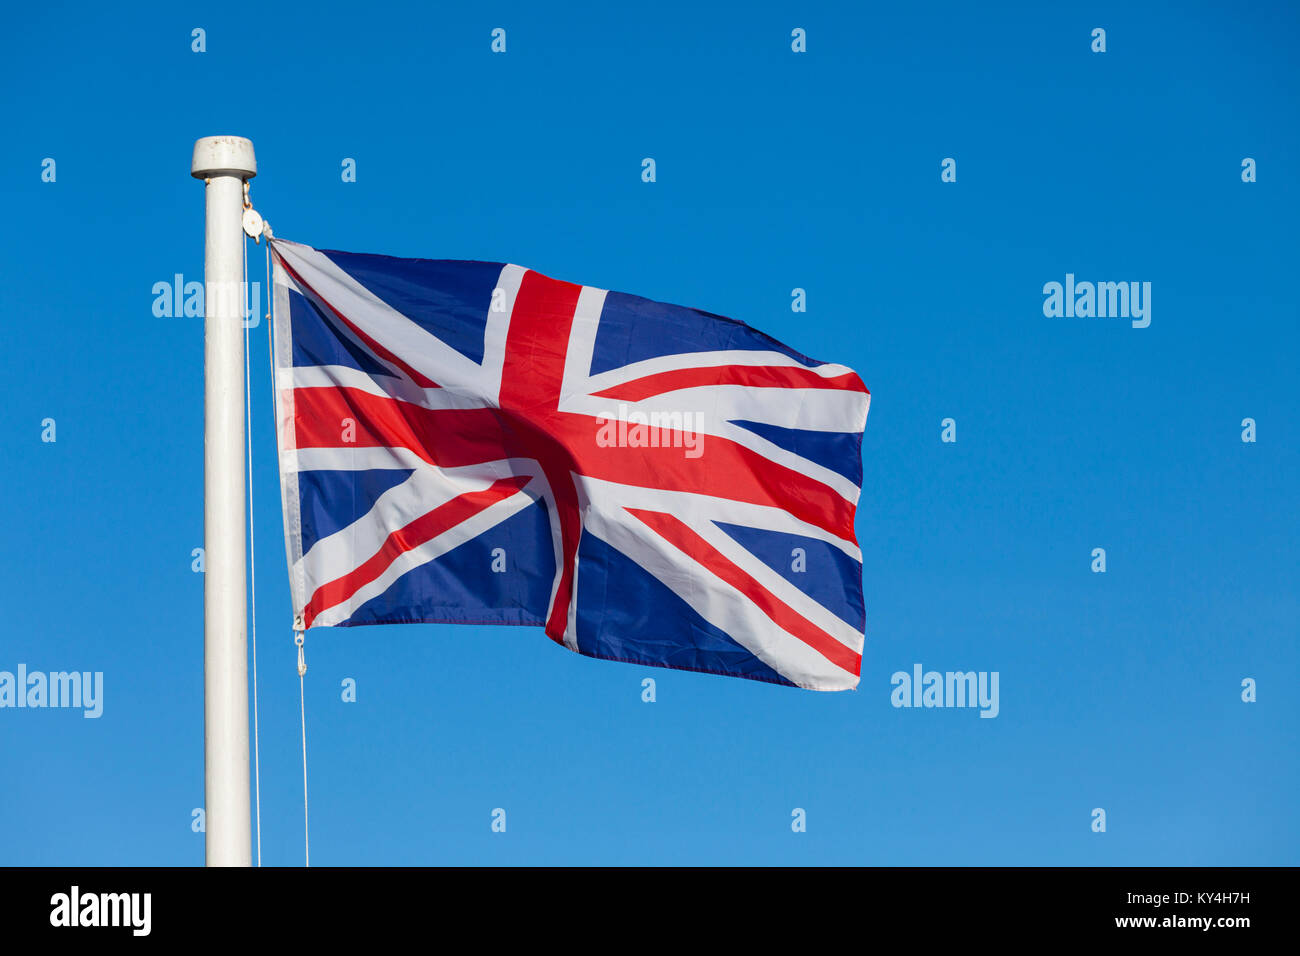 Union Jack flag and flagpole on a bright blue sky background blowing in the wind - Stock Image